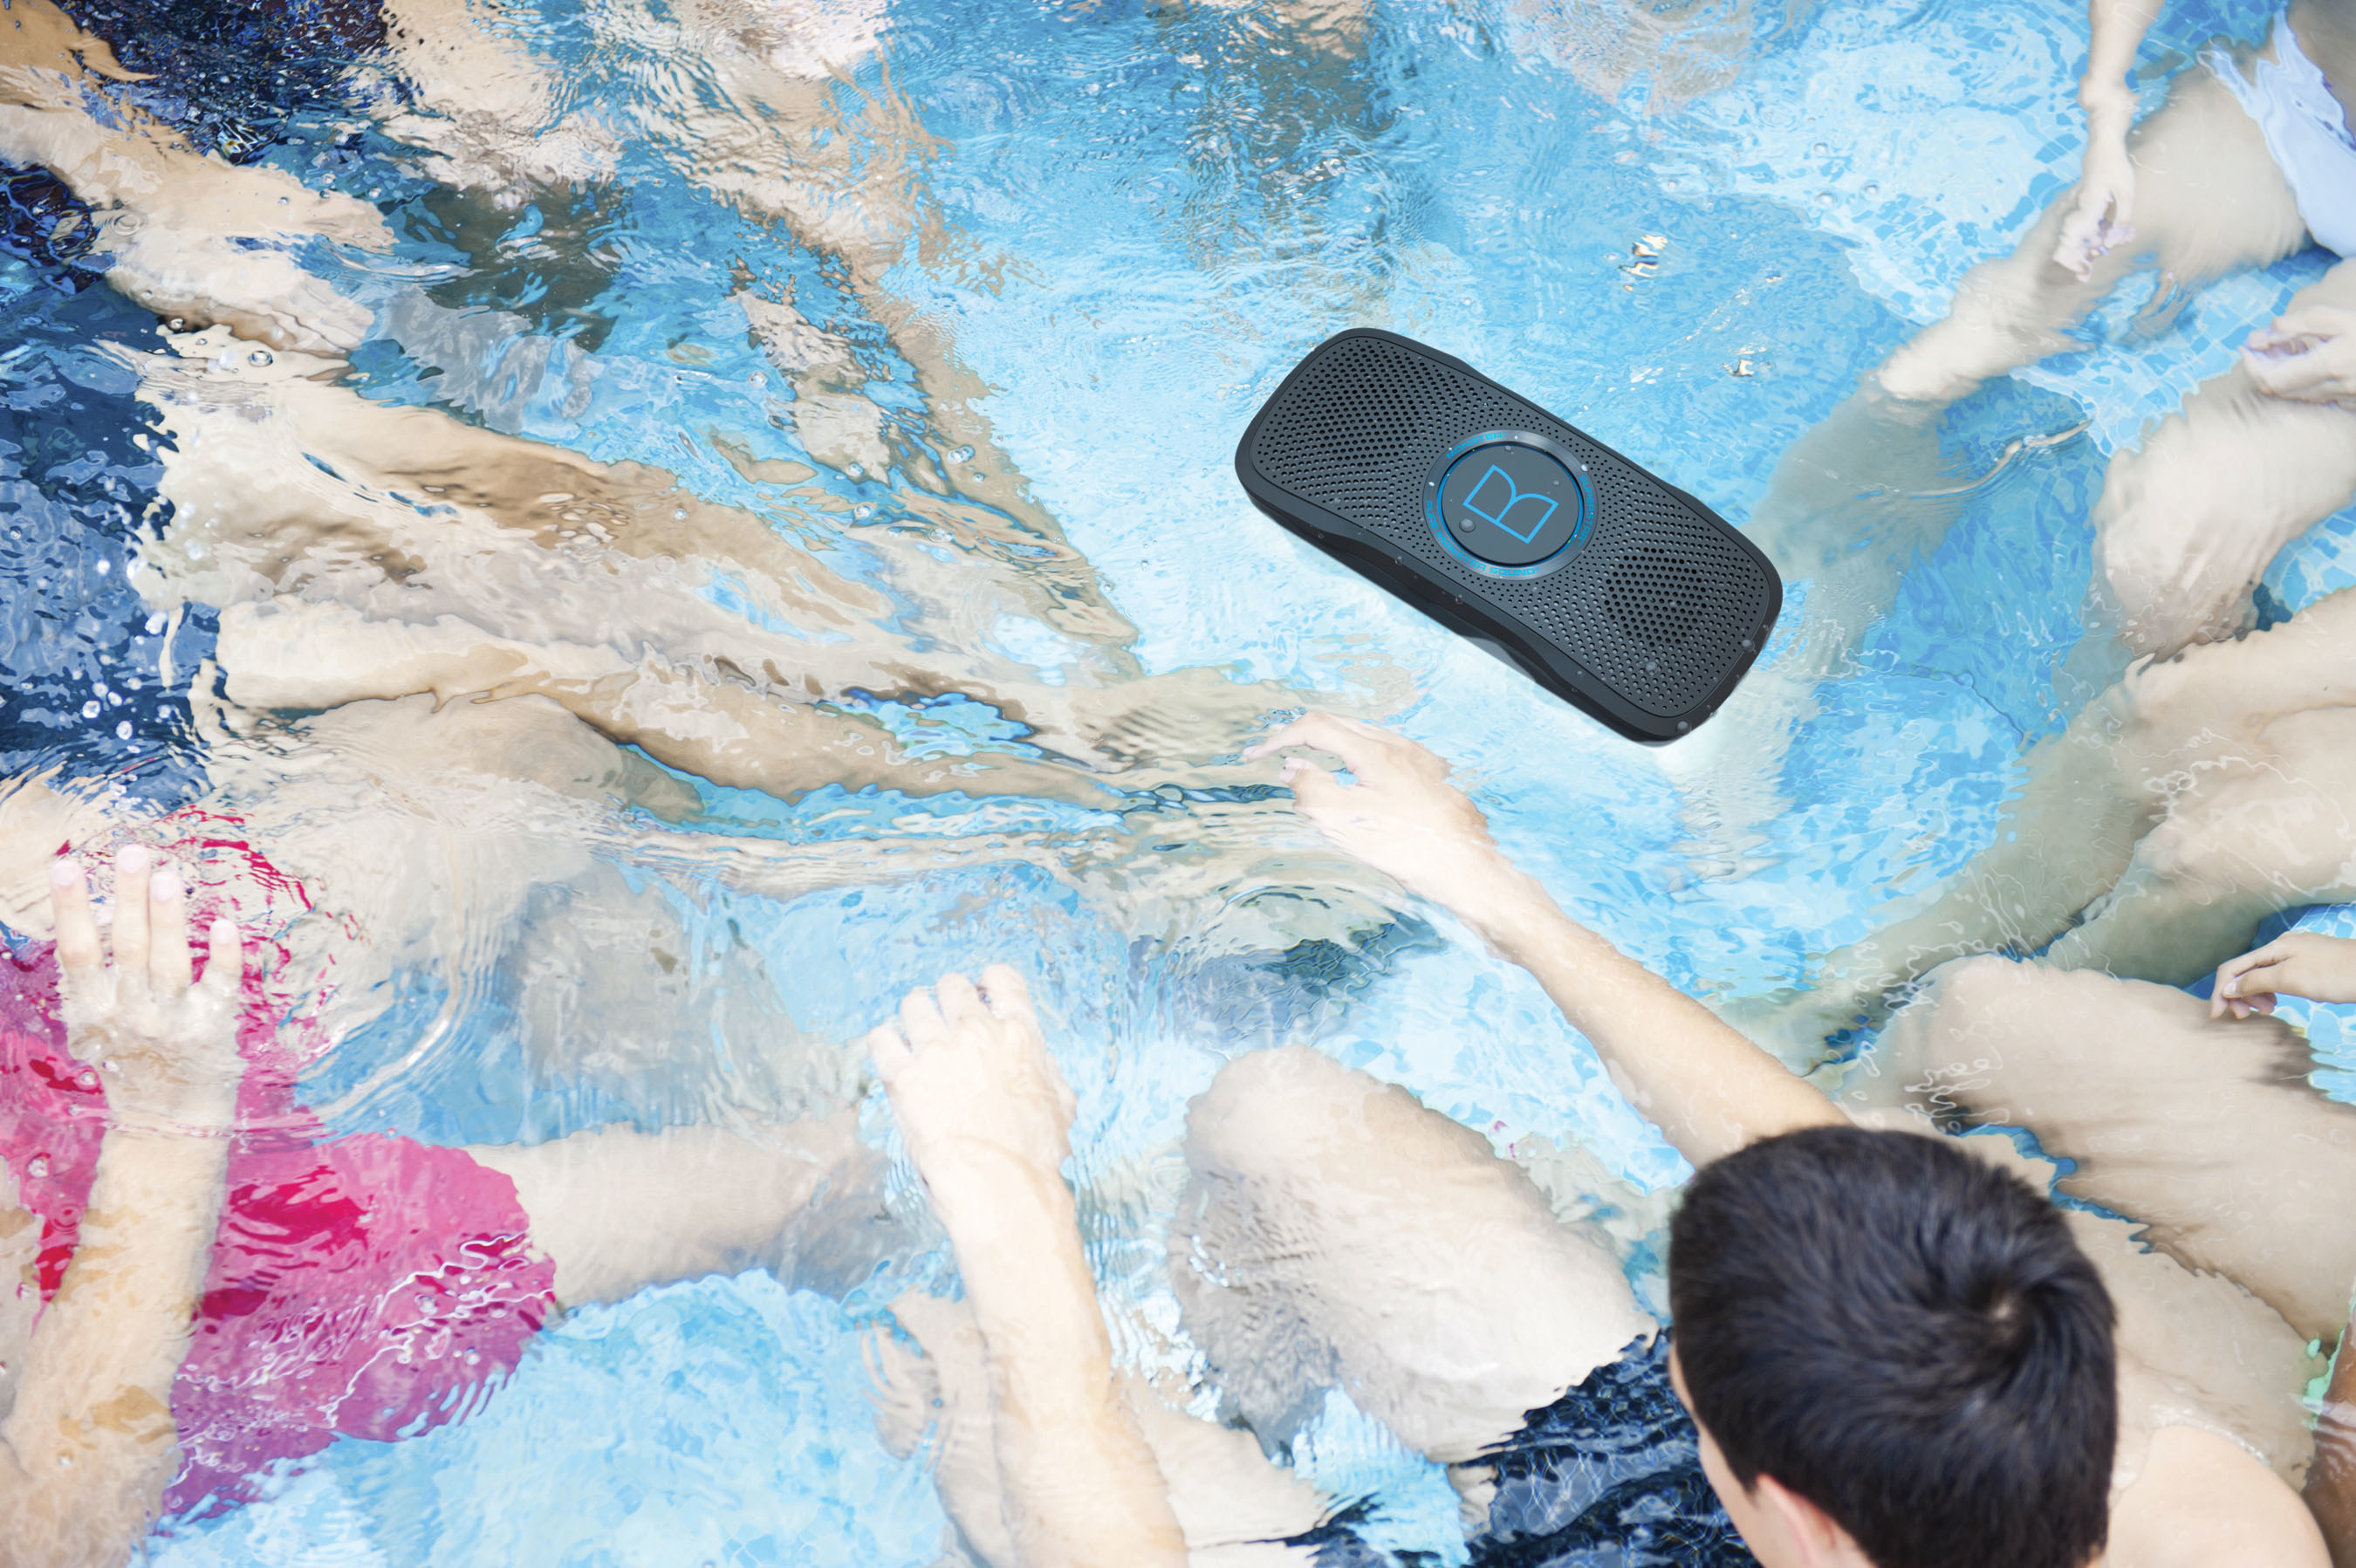 Monster is proud to announce the maiden voyage of its breakthrough SuperStar(TM) BackFloat(TM) (MSRP: $169) high-performance floatable portable speaker at CES 2015. No matter where you want to enjoy your music - beach, pool, shower, surfing, outdoors or around the house - SuperStar BackFloat delivers great sounding music, with acclaimed Pure Monster Sound(TM). SuperStar(TM) BackFloat(TM) features built-in mics that also offer speakerphone functionality for taking conference calls via a smartphone.